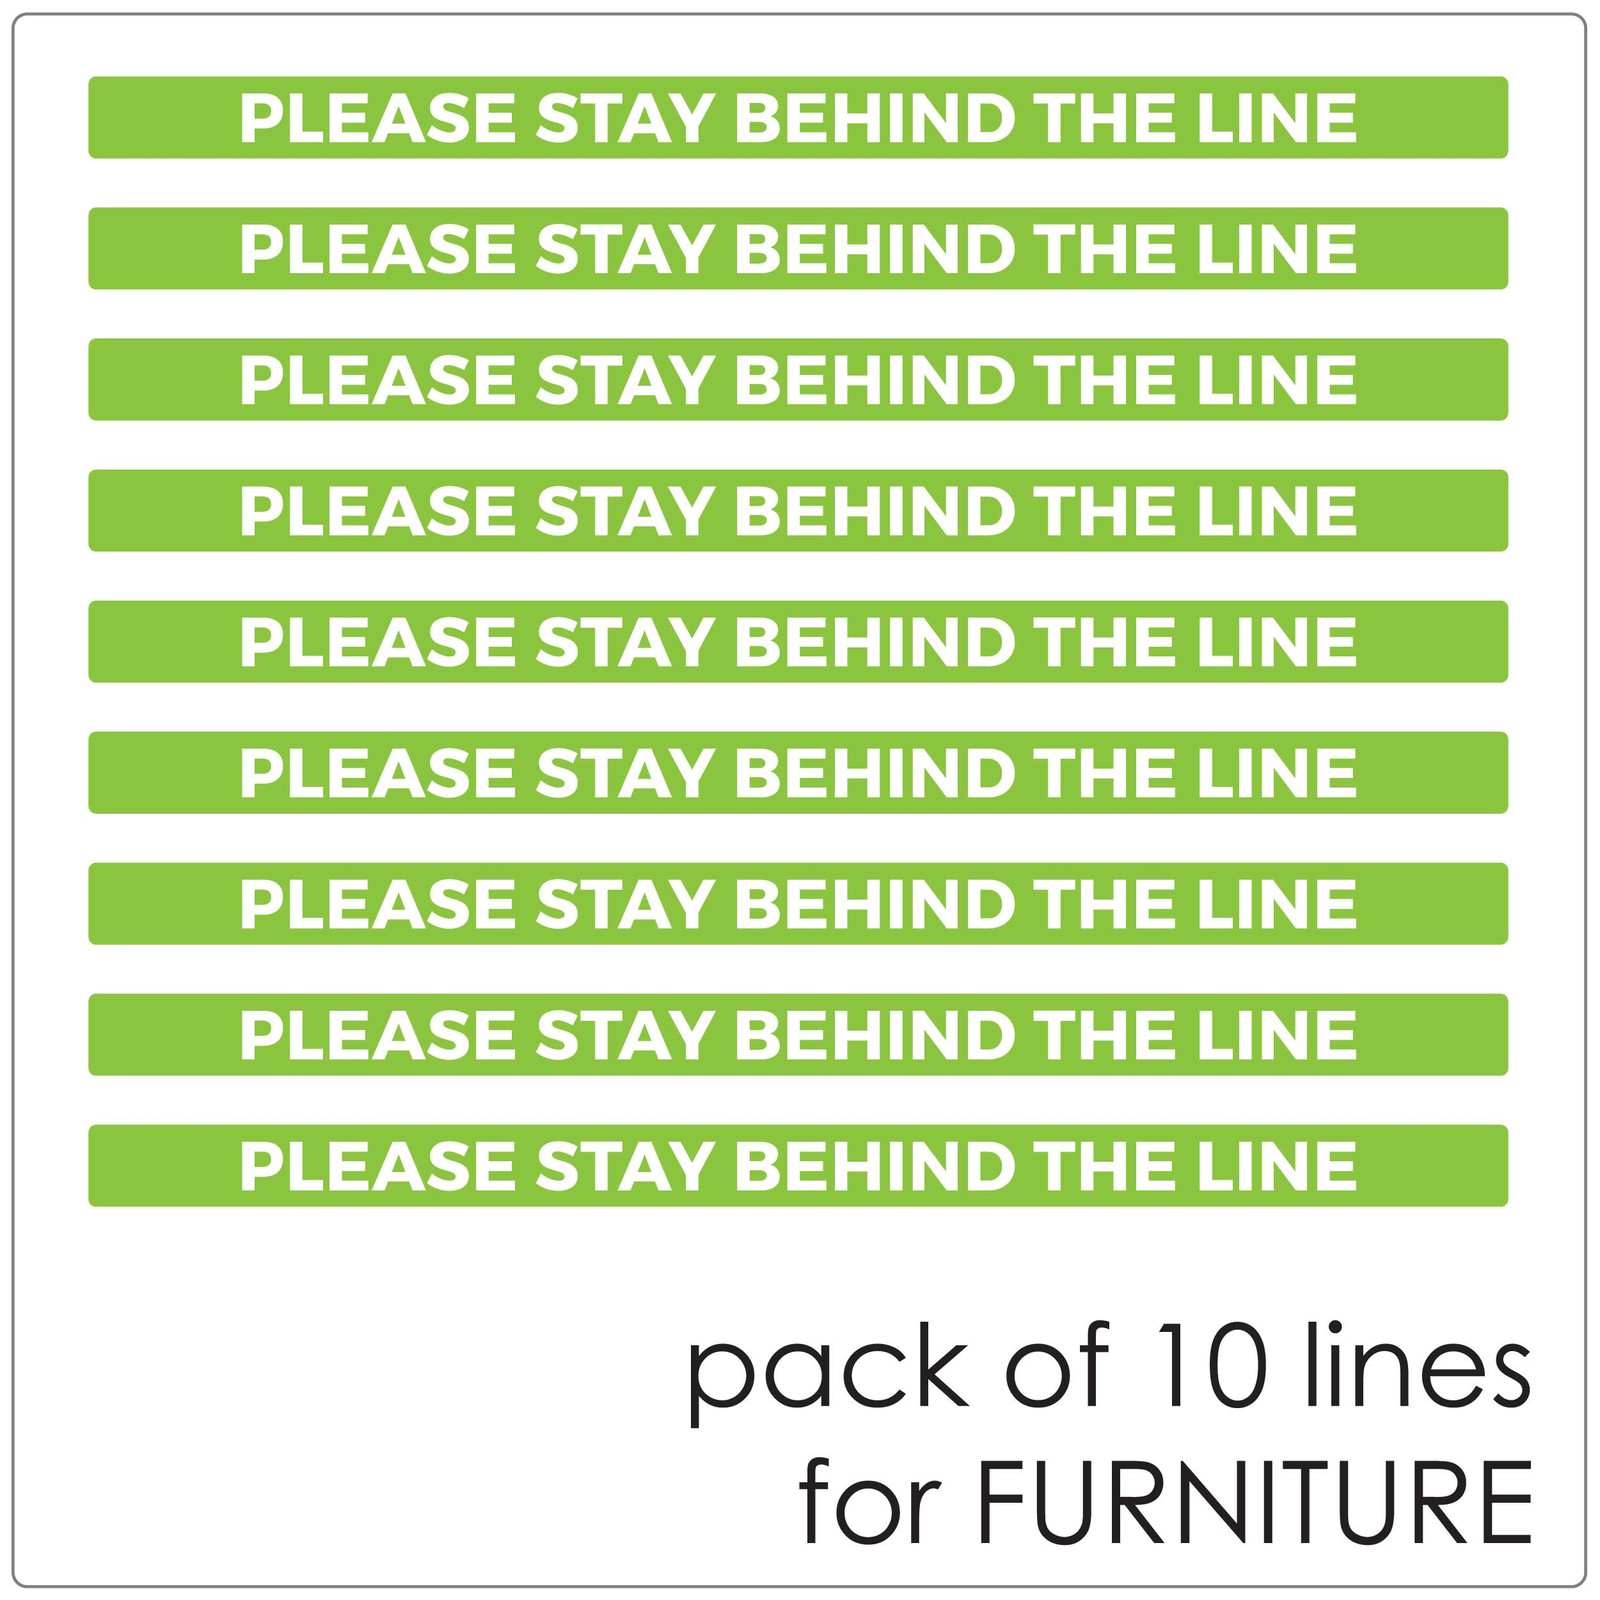 social distancing COUNTER stickers, pack of 10 Self-adhesive Corona virus furniture sticker to help social distancing.